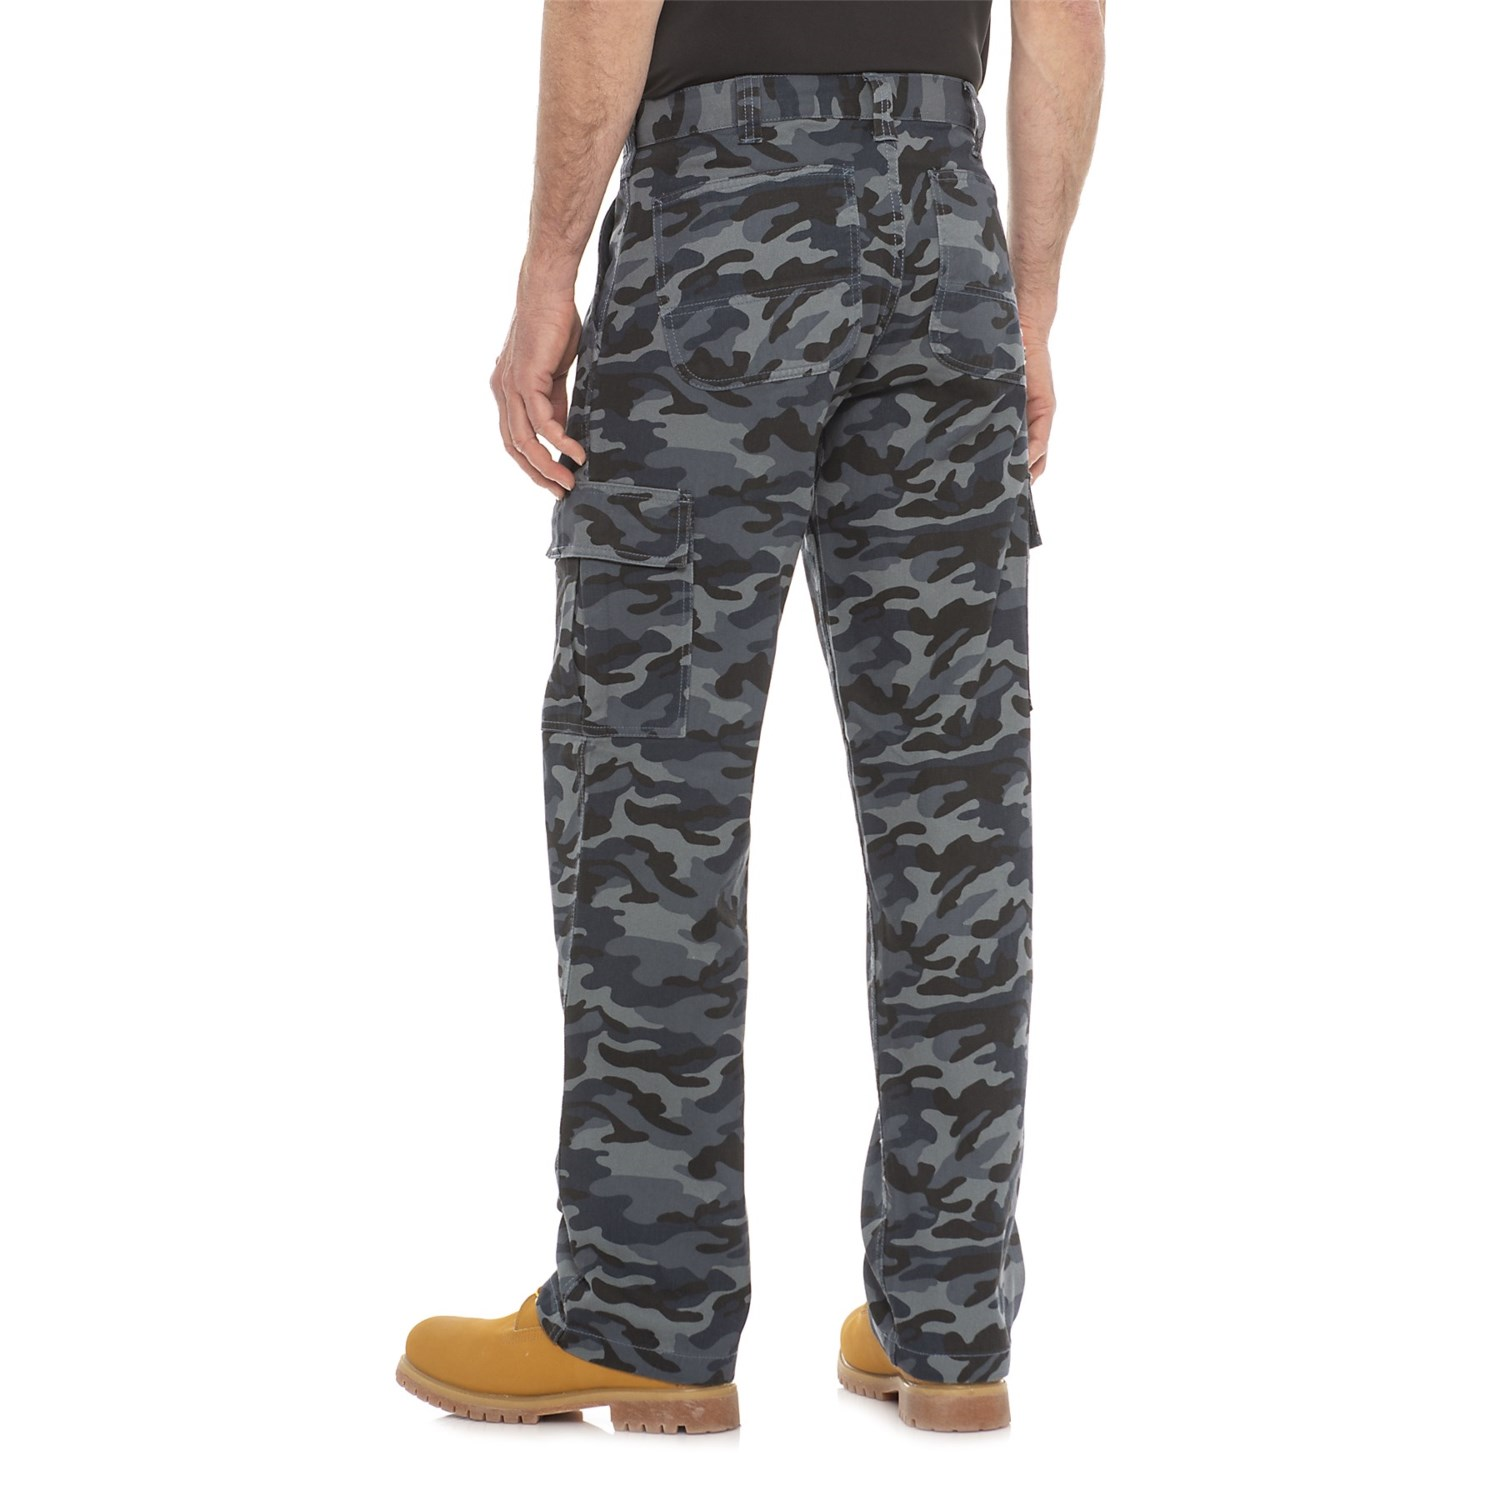 Work King Twill Camo Cargo Pants (For Men) - Save 82% ac39c732a80